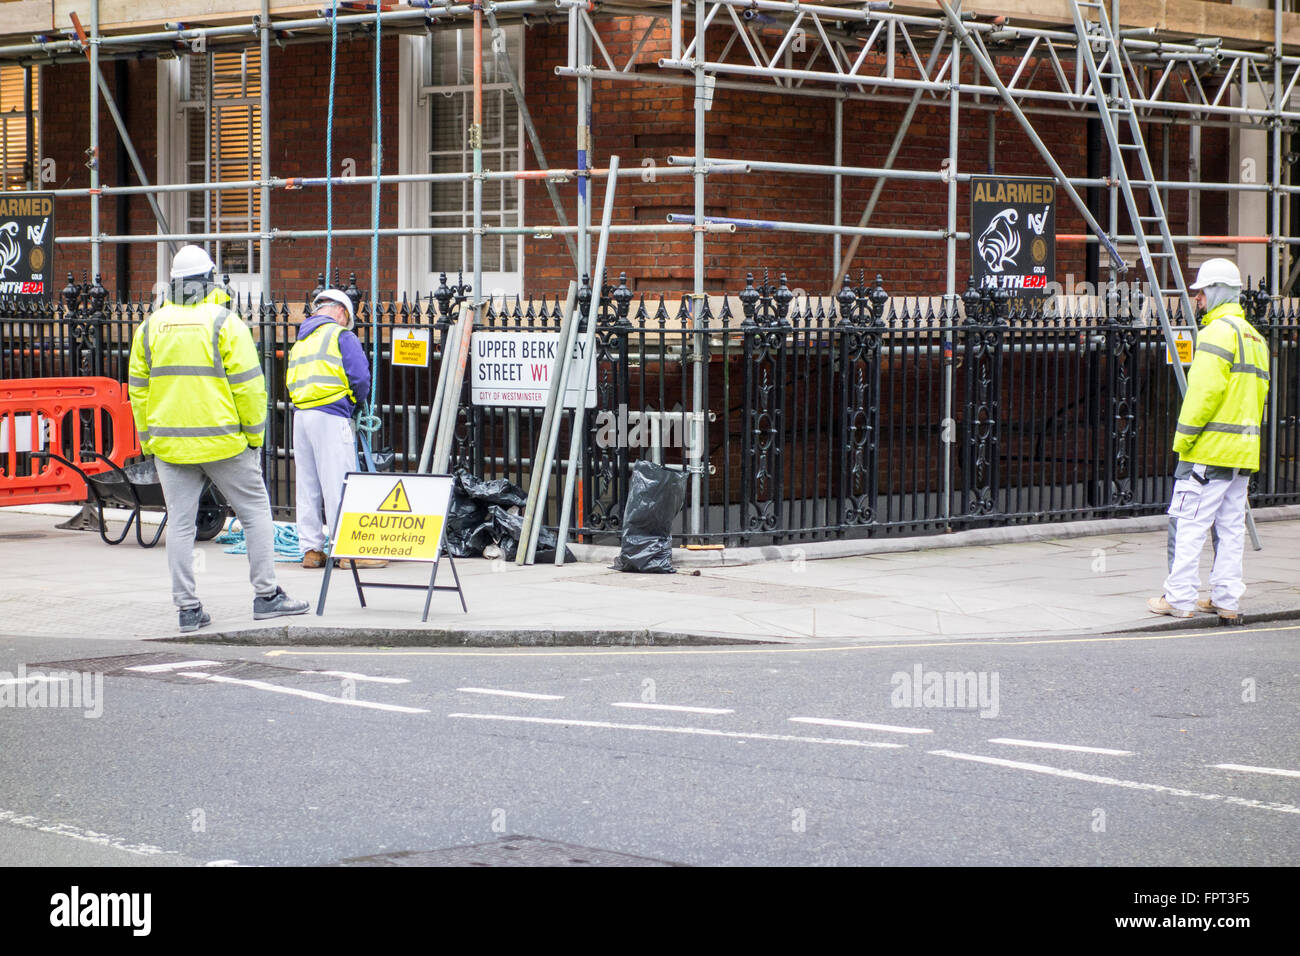 Scaffolders working outside a building in London wearing PPE personal protective equipment, UK Stock Photo